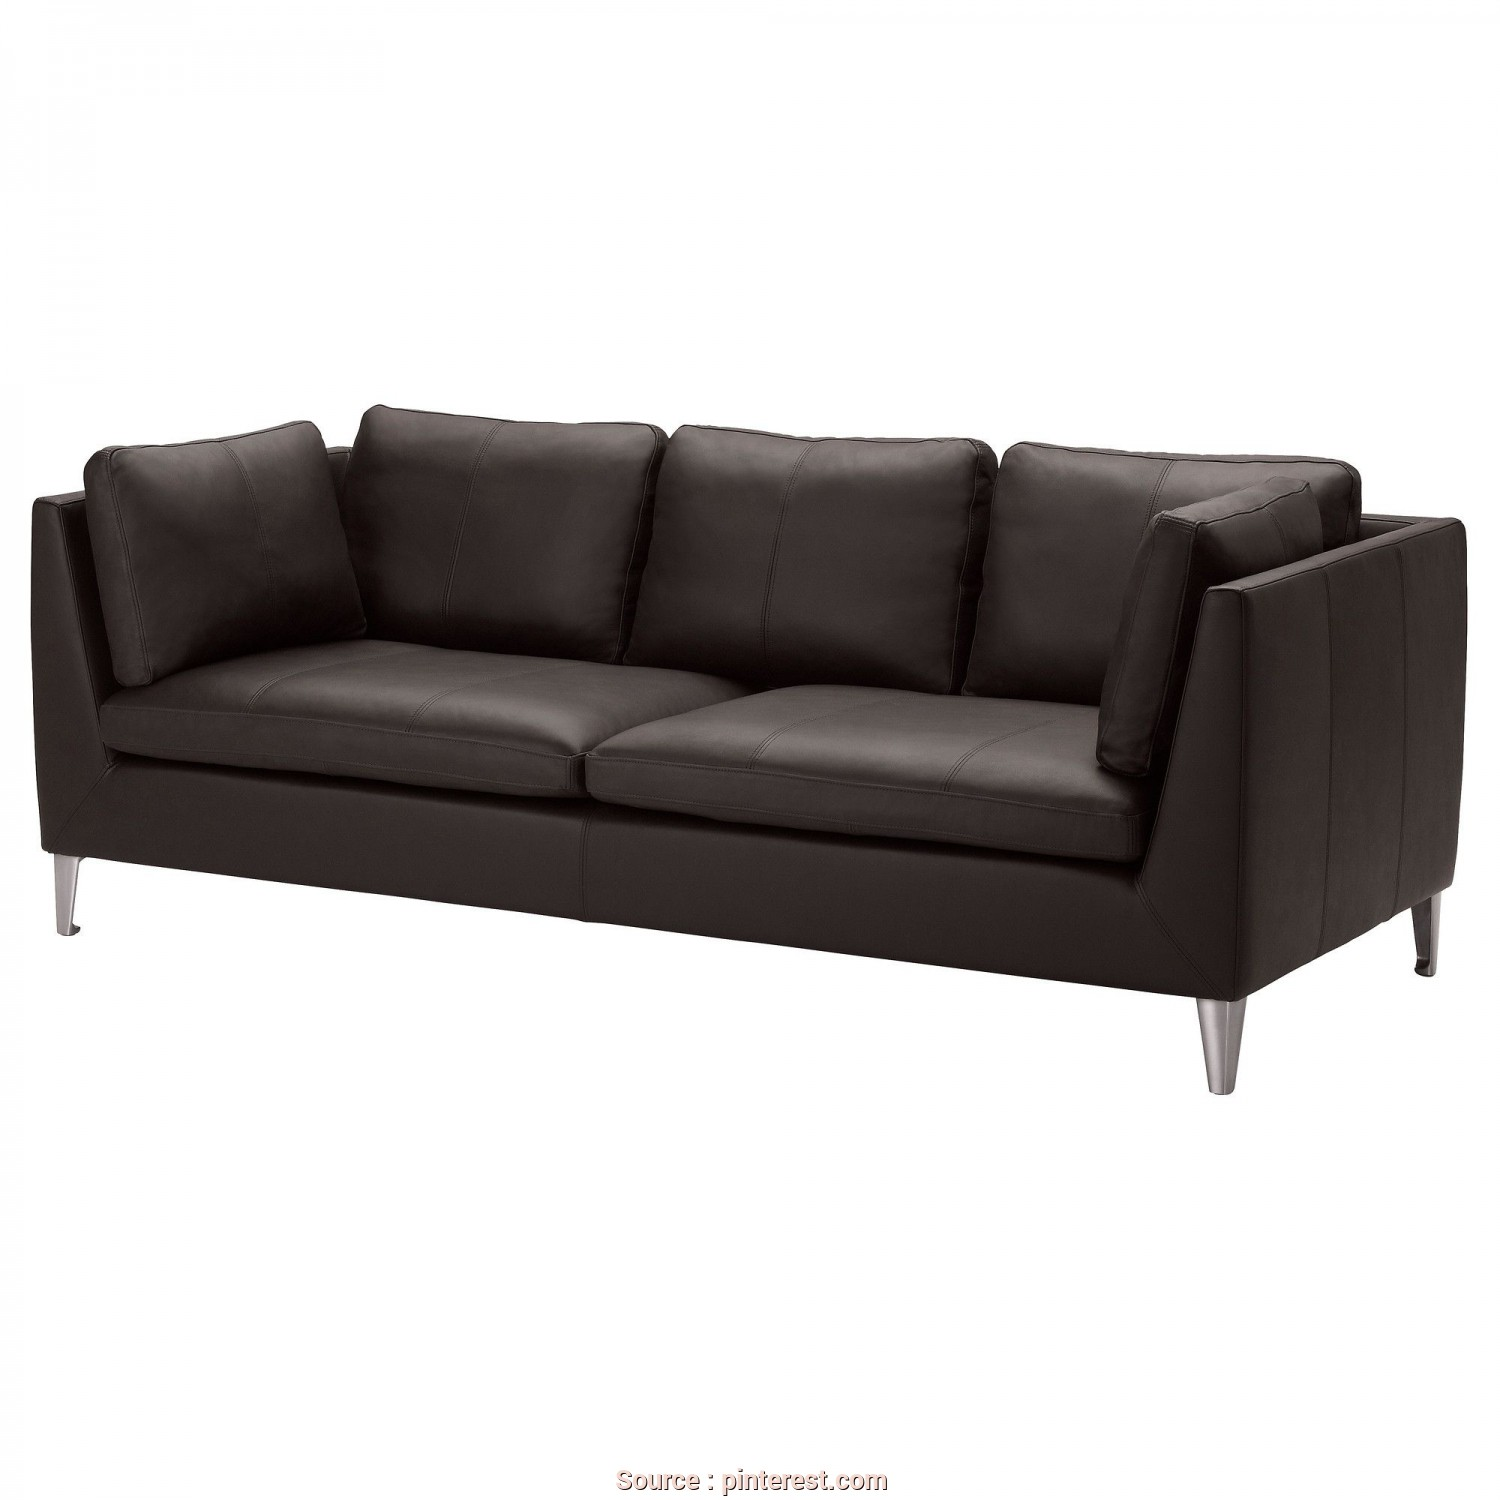 Ikea Divano Stockholm 2 Posti, Superiore IKEA, STOCKHOLM Sofa, Elegant Dark Brown, Well It Sounds Comfy,, Those Side Rests Look Able To Be Propped Up Against To …, Southwest, Mom&Dad In